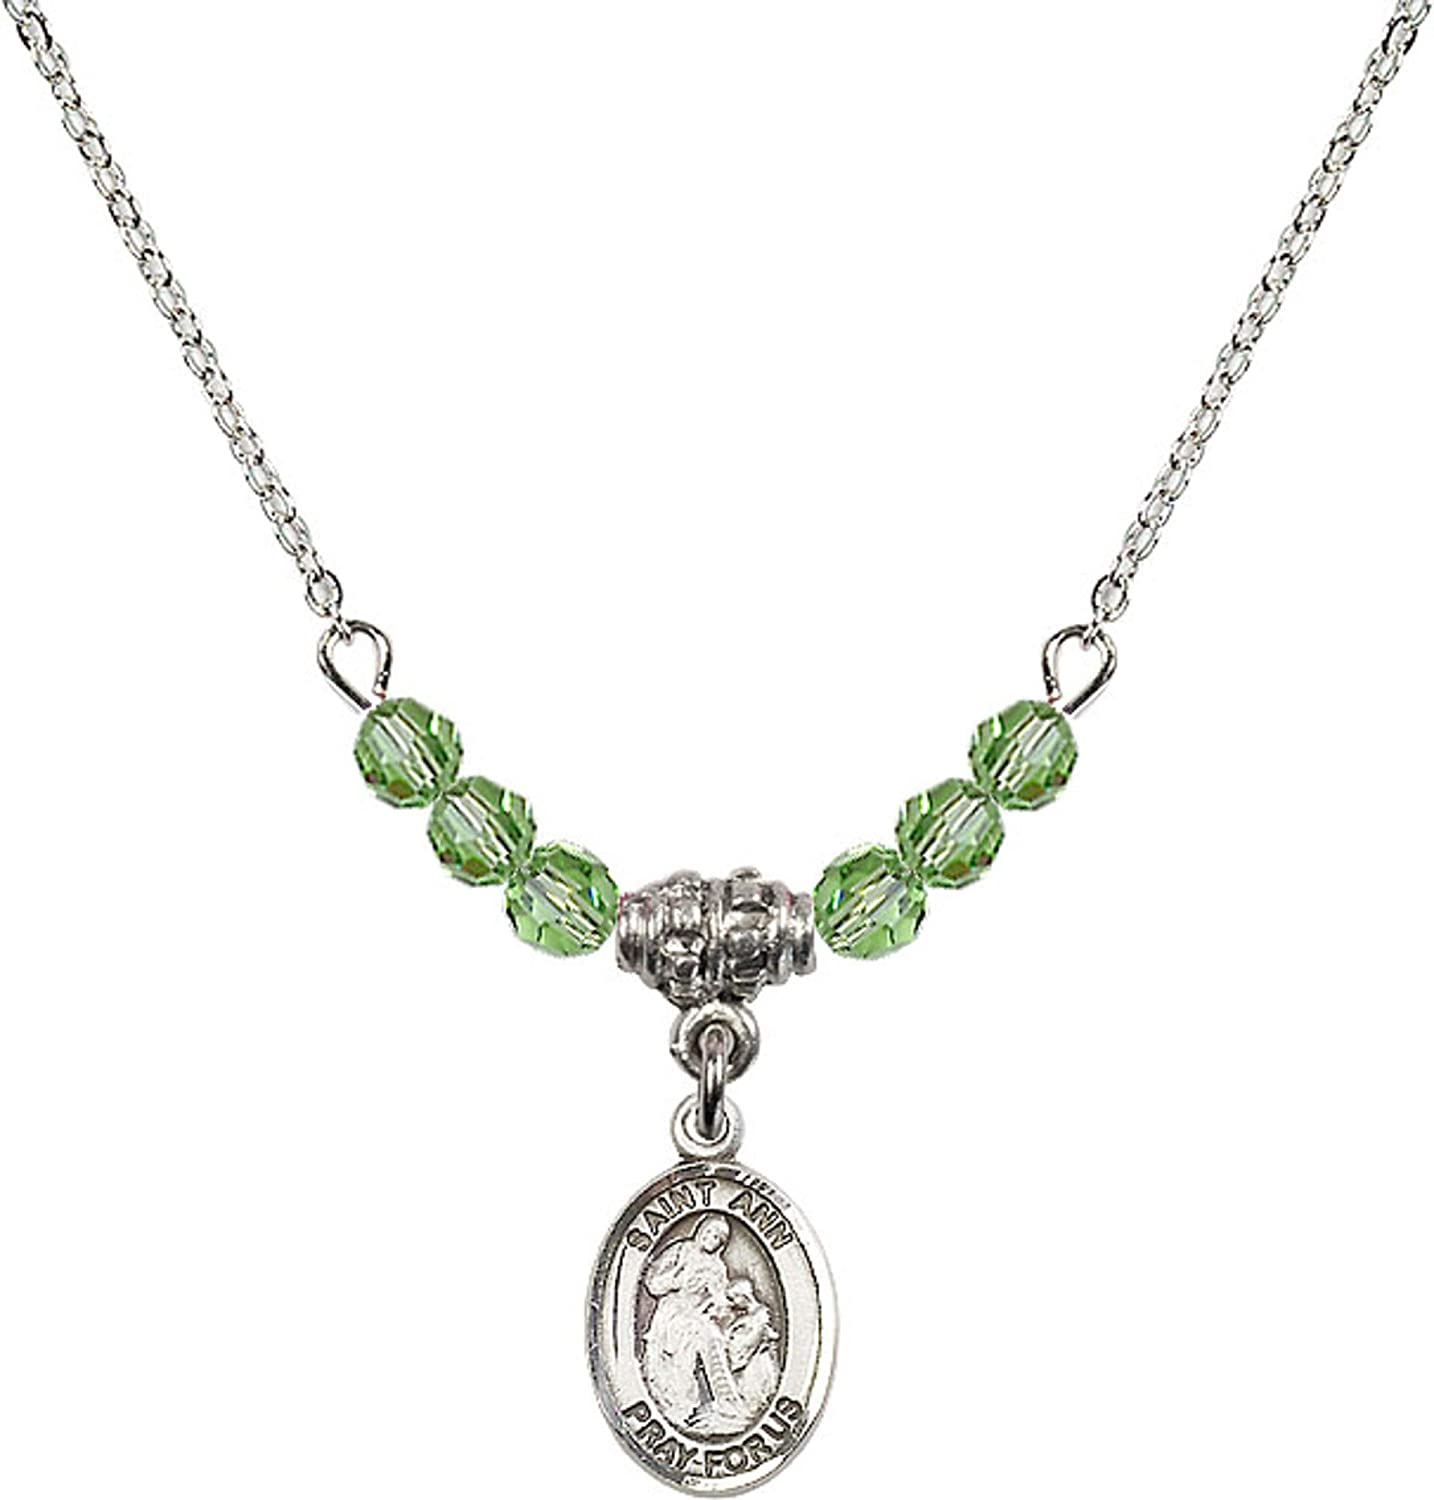 Bonyak Jewelry 18 Inch Rhodium Plated Necklace w// 4mm Green August Birth Month Stone Beads and Saint Ann Charm